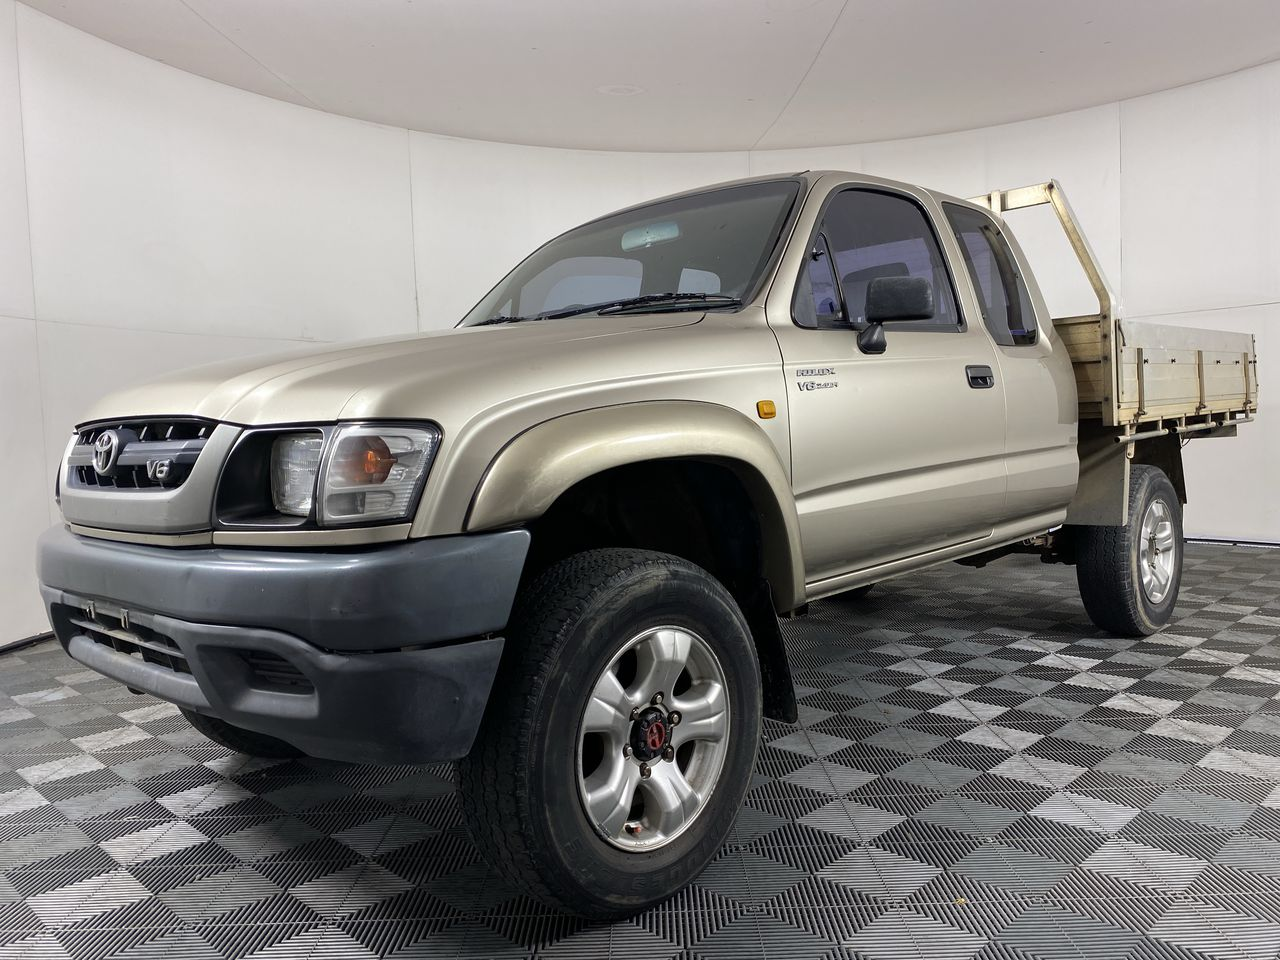 2002 Toyota Hilux (4x4) Automatic Extra Cab Ute